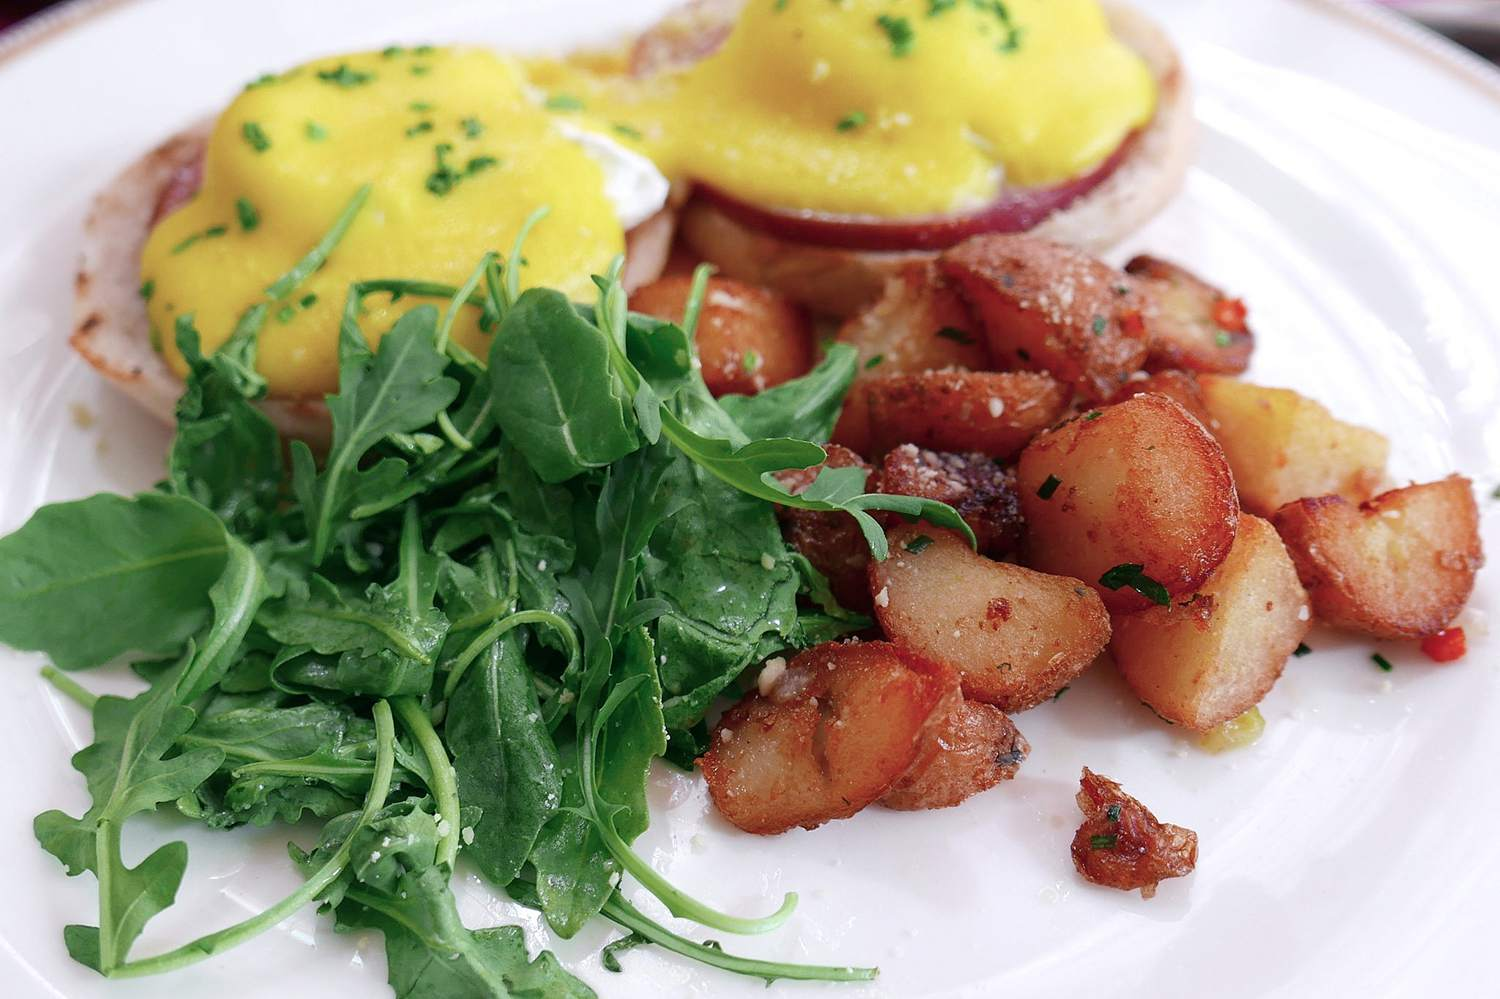 Eggs Benedict, Canadian Bacon, Hollandaise, Fines Herbes at Bistronomic,